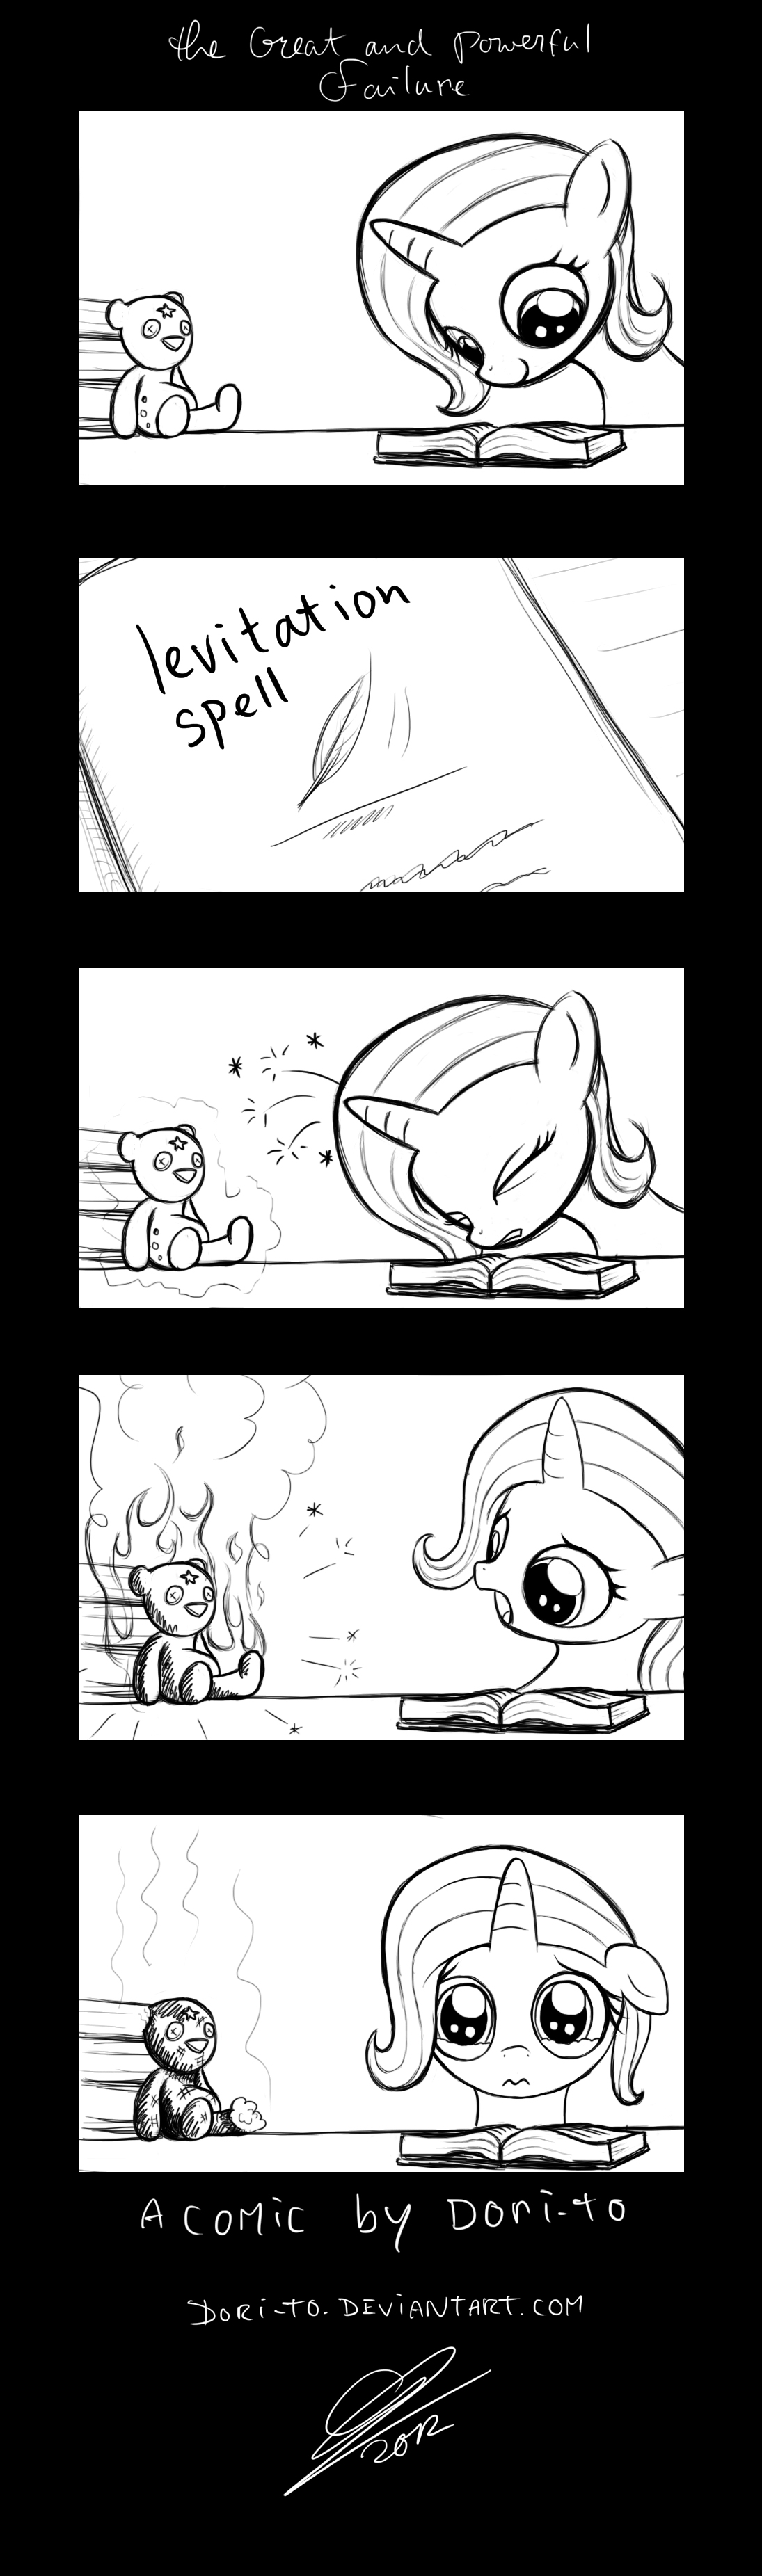 Random Comic #1 - The Great and Powerful Failure by Dori-to